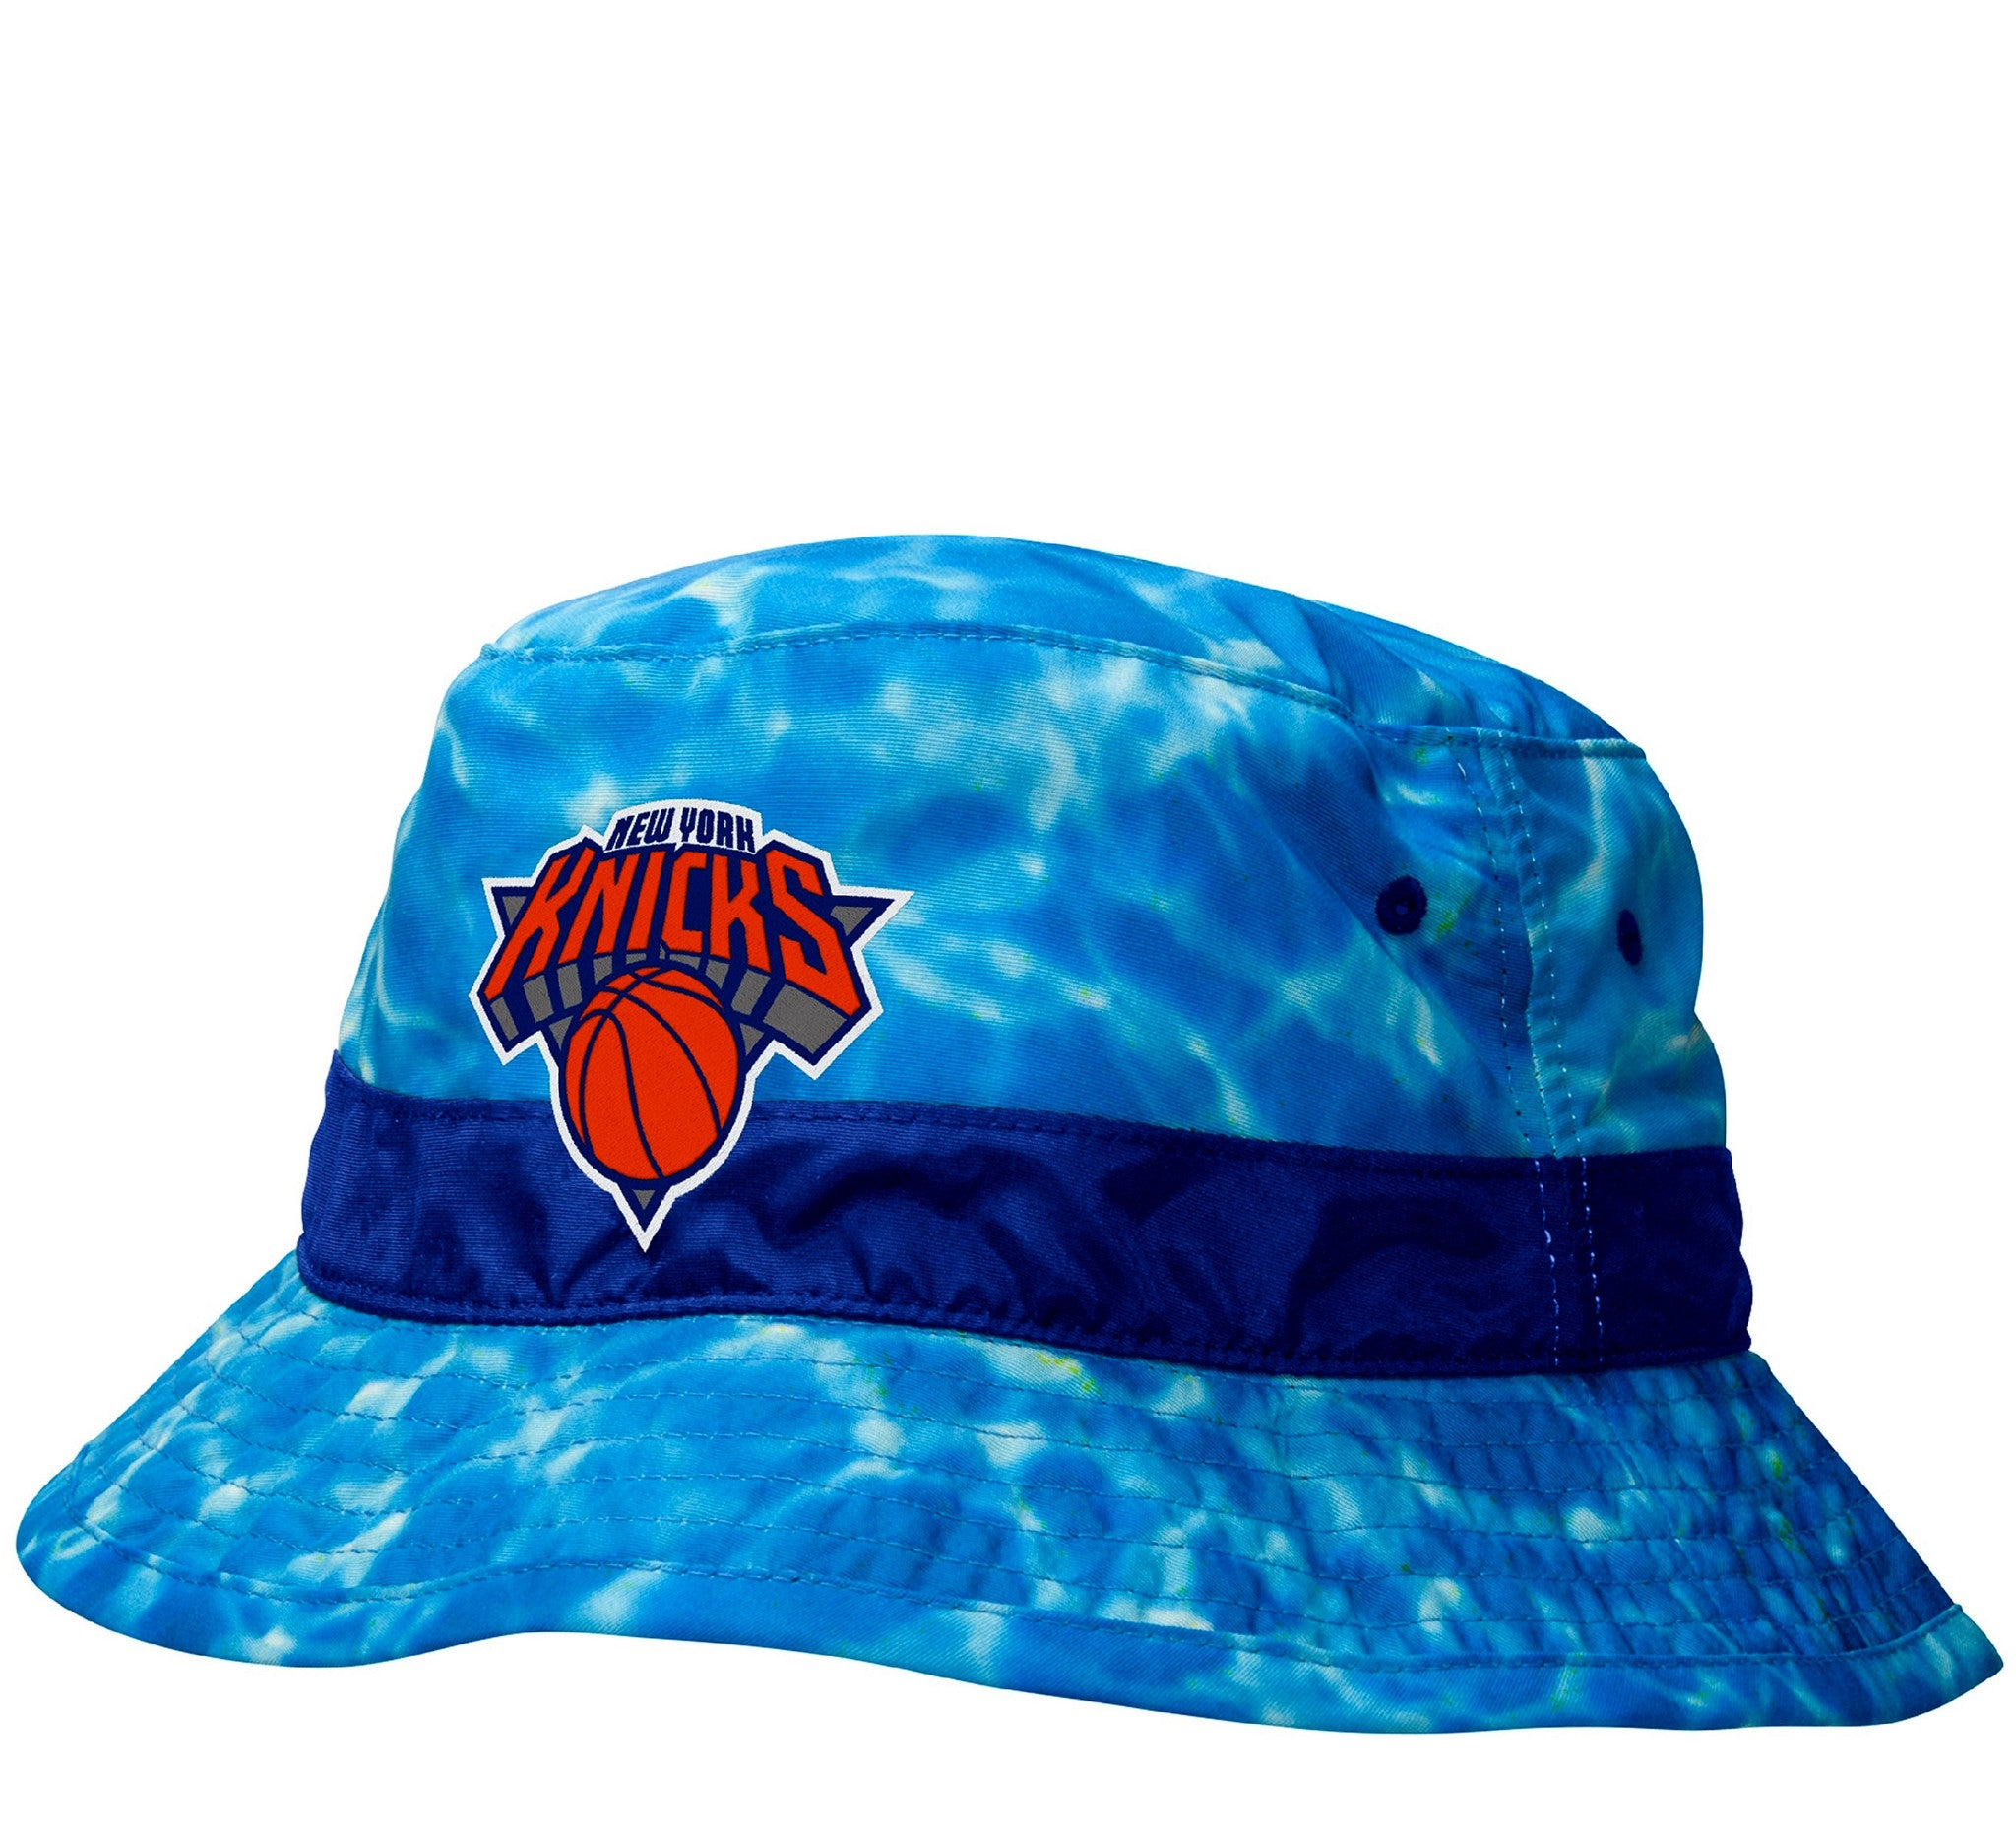 Knicks Surf Camo Bucket Hat - And Still